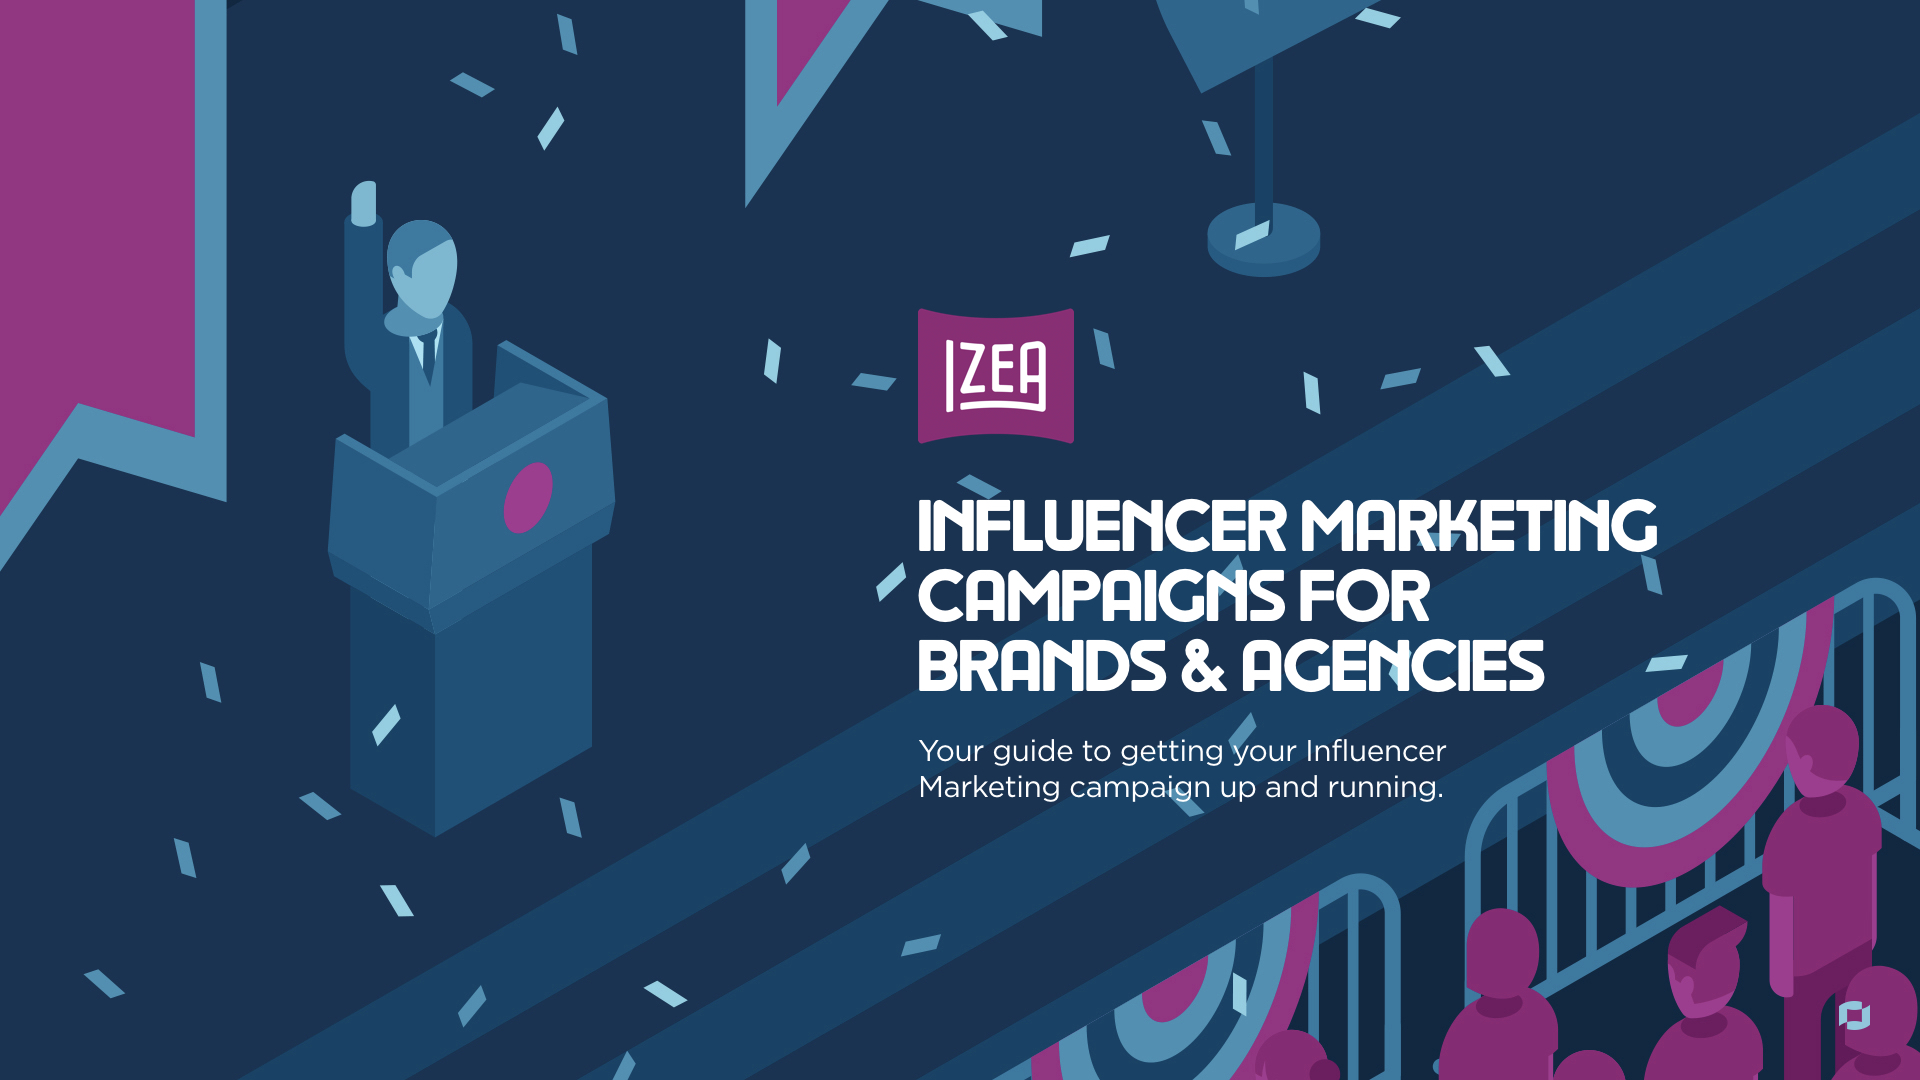 Influencer Marketer's Guide to Influencer Marketing Campaigns Ebook Cover